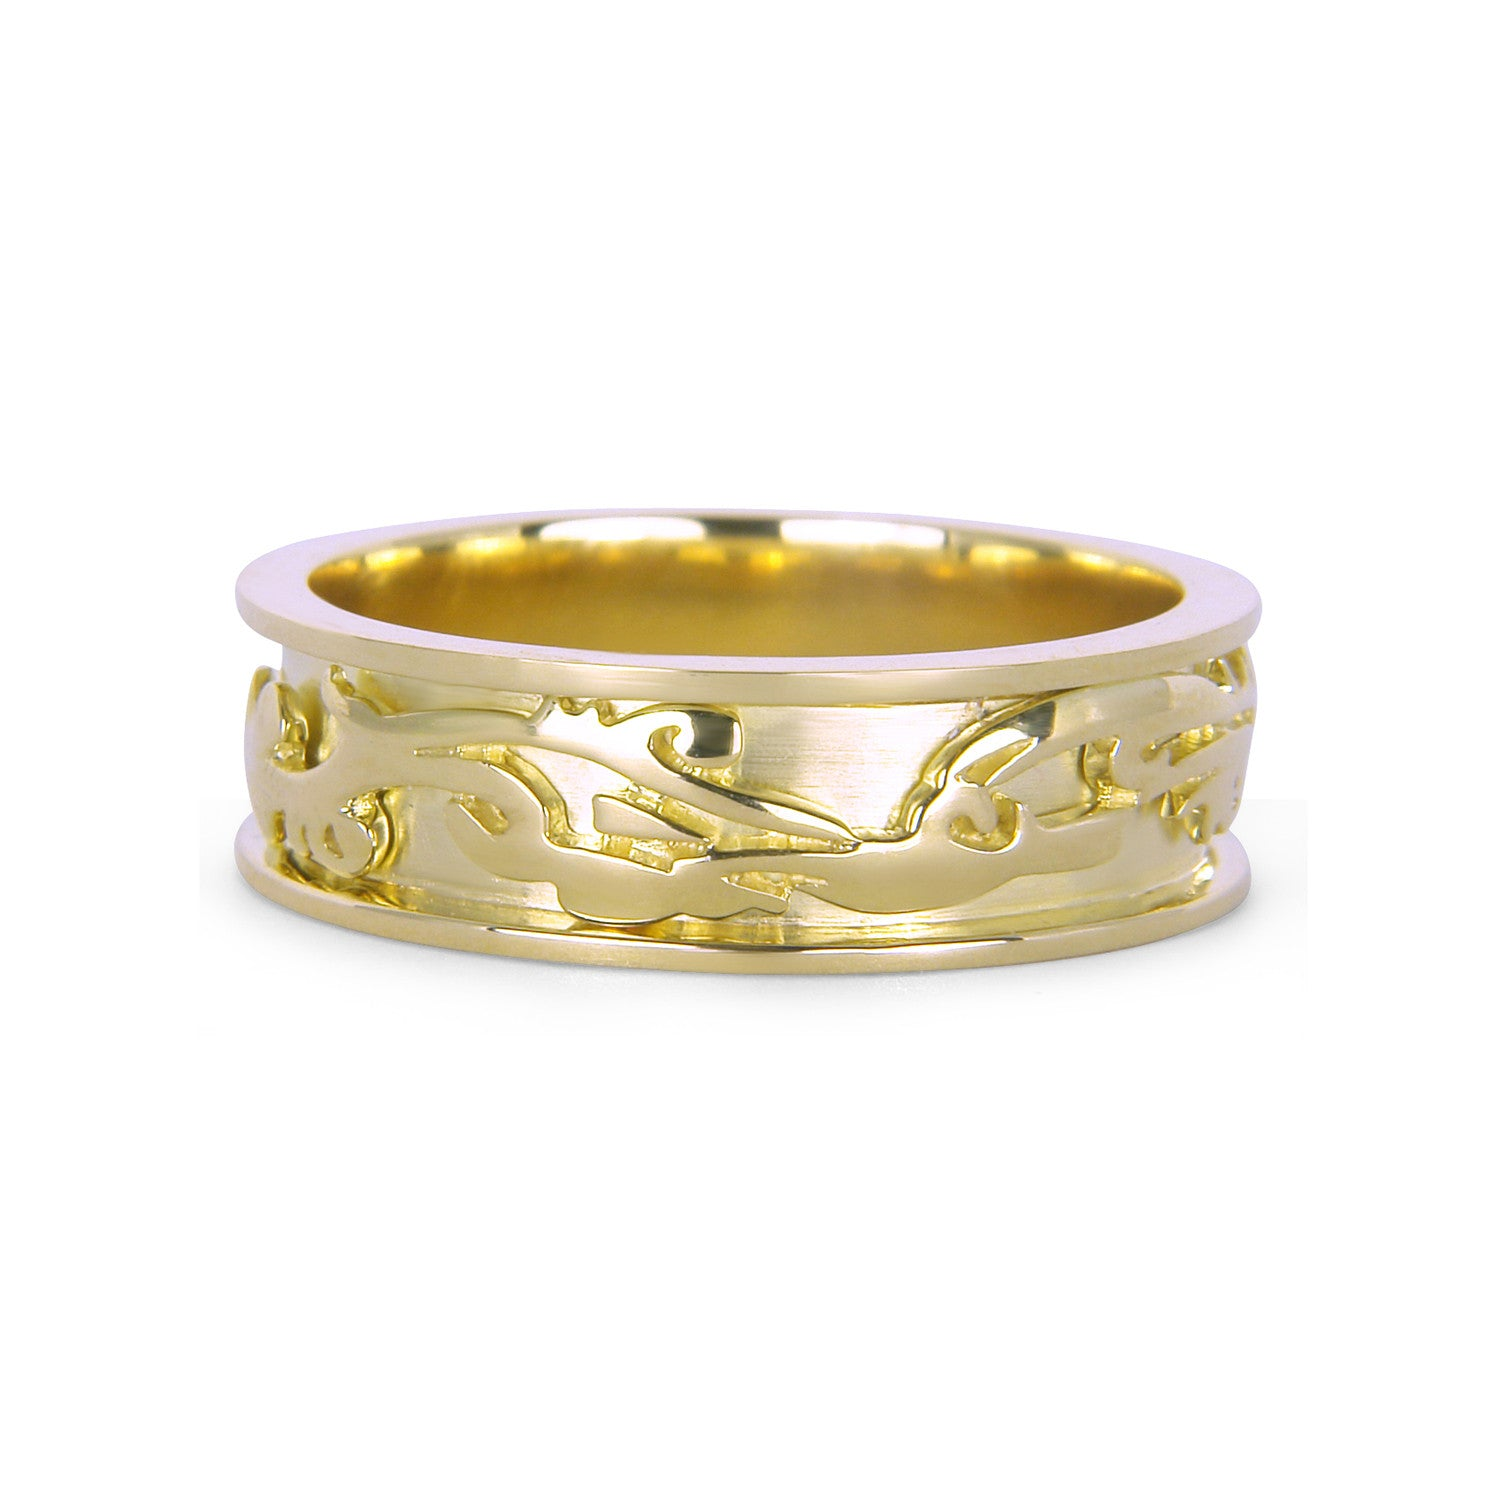 Bespoke Jewellery - Adam Dragon wedding ring front- Arabel Lebrusan